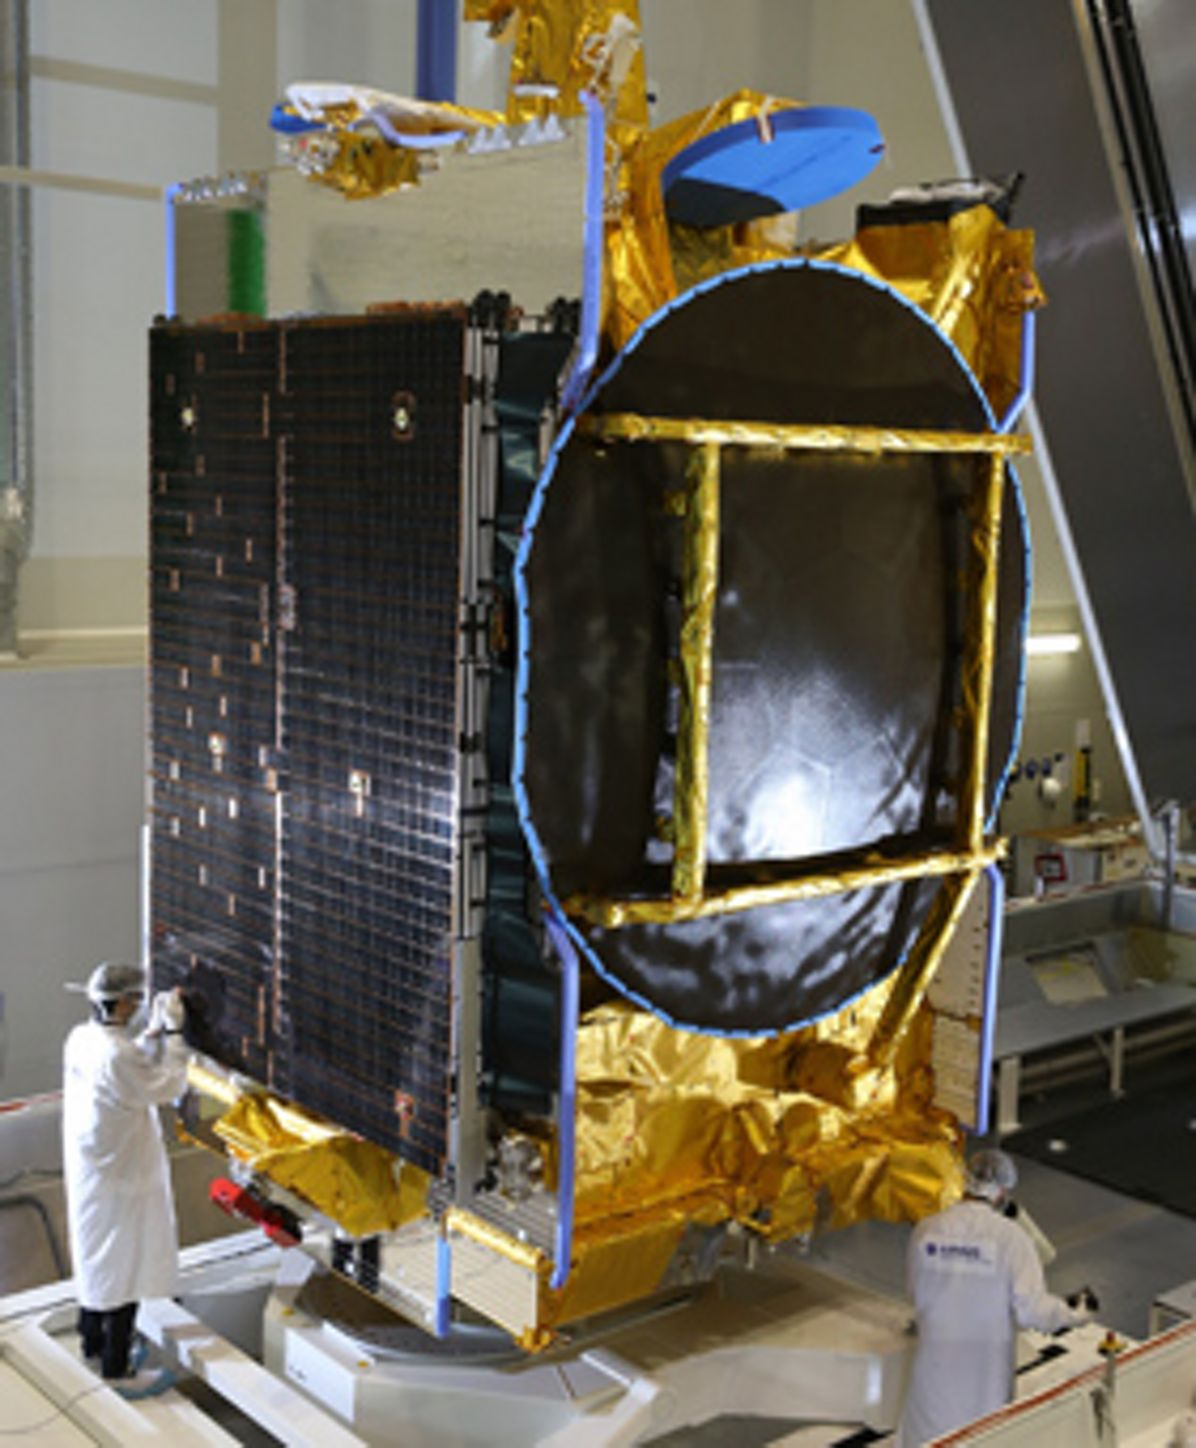 SES-10, the 10th Eurostar satellite built by Airbus for satellite operator SES, in cleanrooms in Toulouse, France